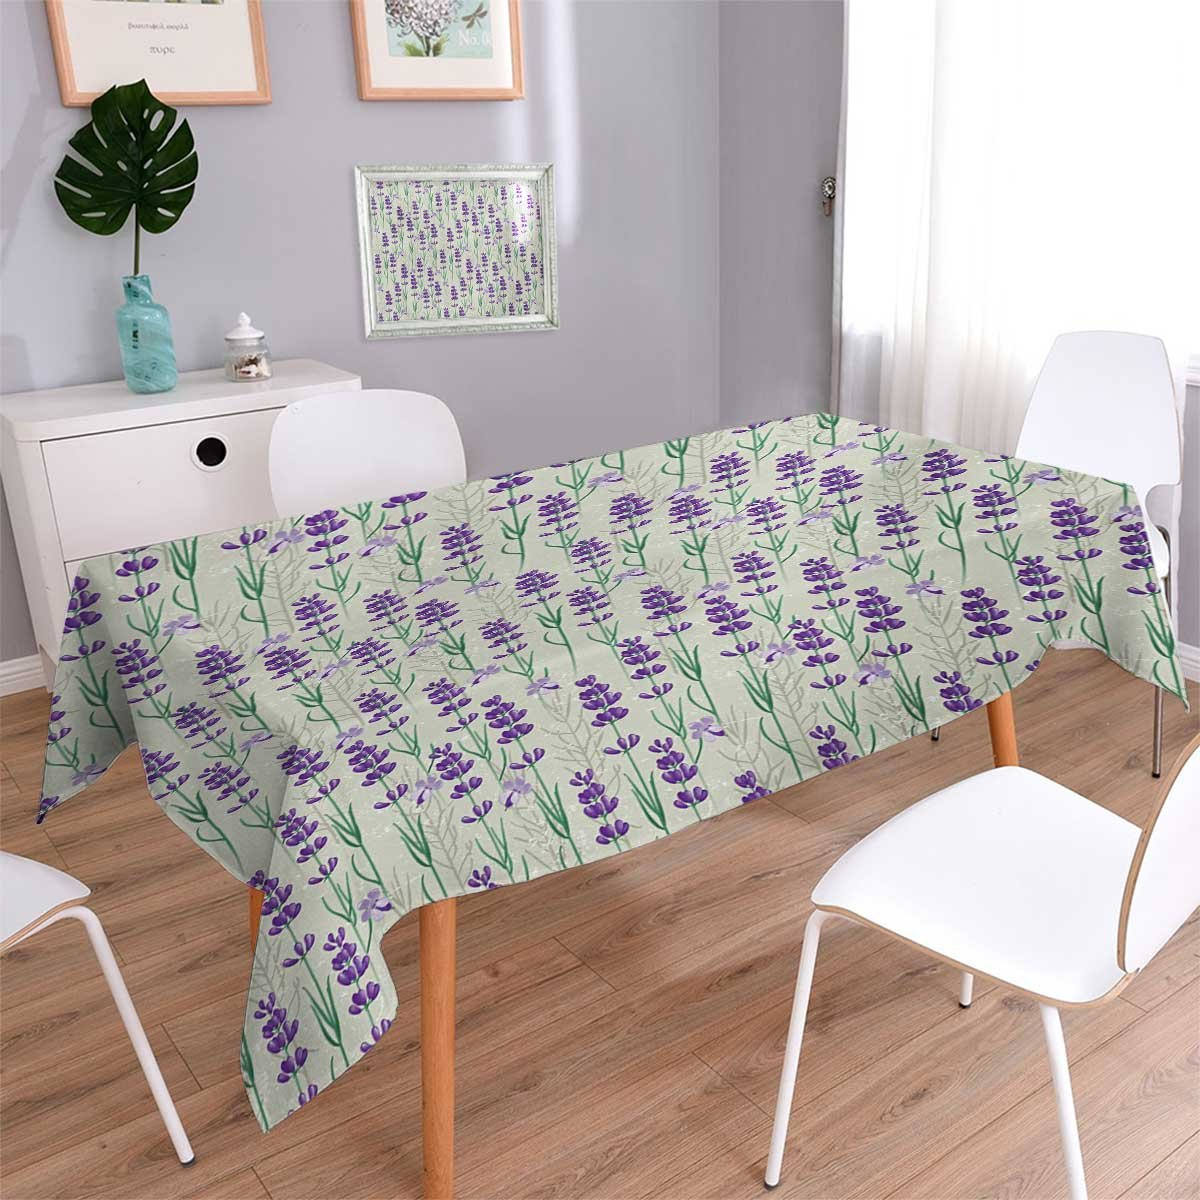 Angoueleven Lavender Patterned Tablecloth Botanical Pattern with Fresh Herbs Aromatherapy Spa Theme Dust-proof Oblong Tablecloth Pale Sage Green Violet and Green size:52''x70''